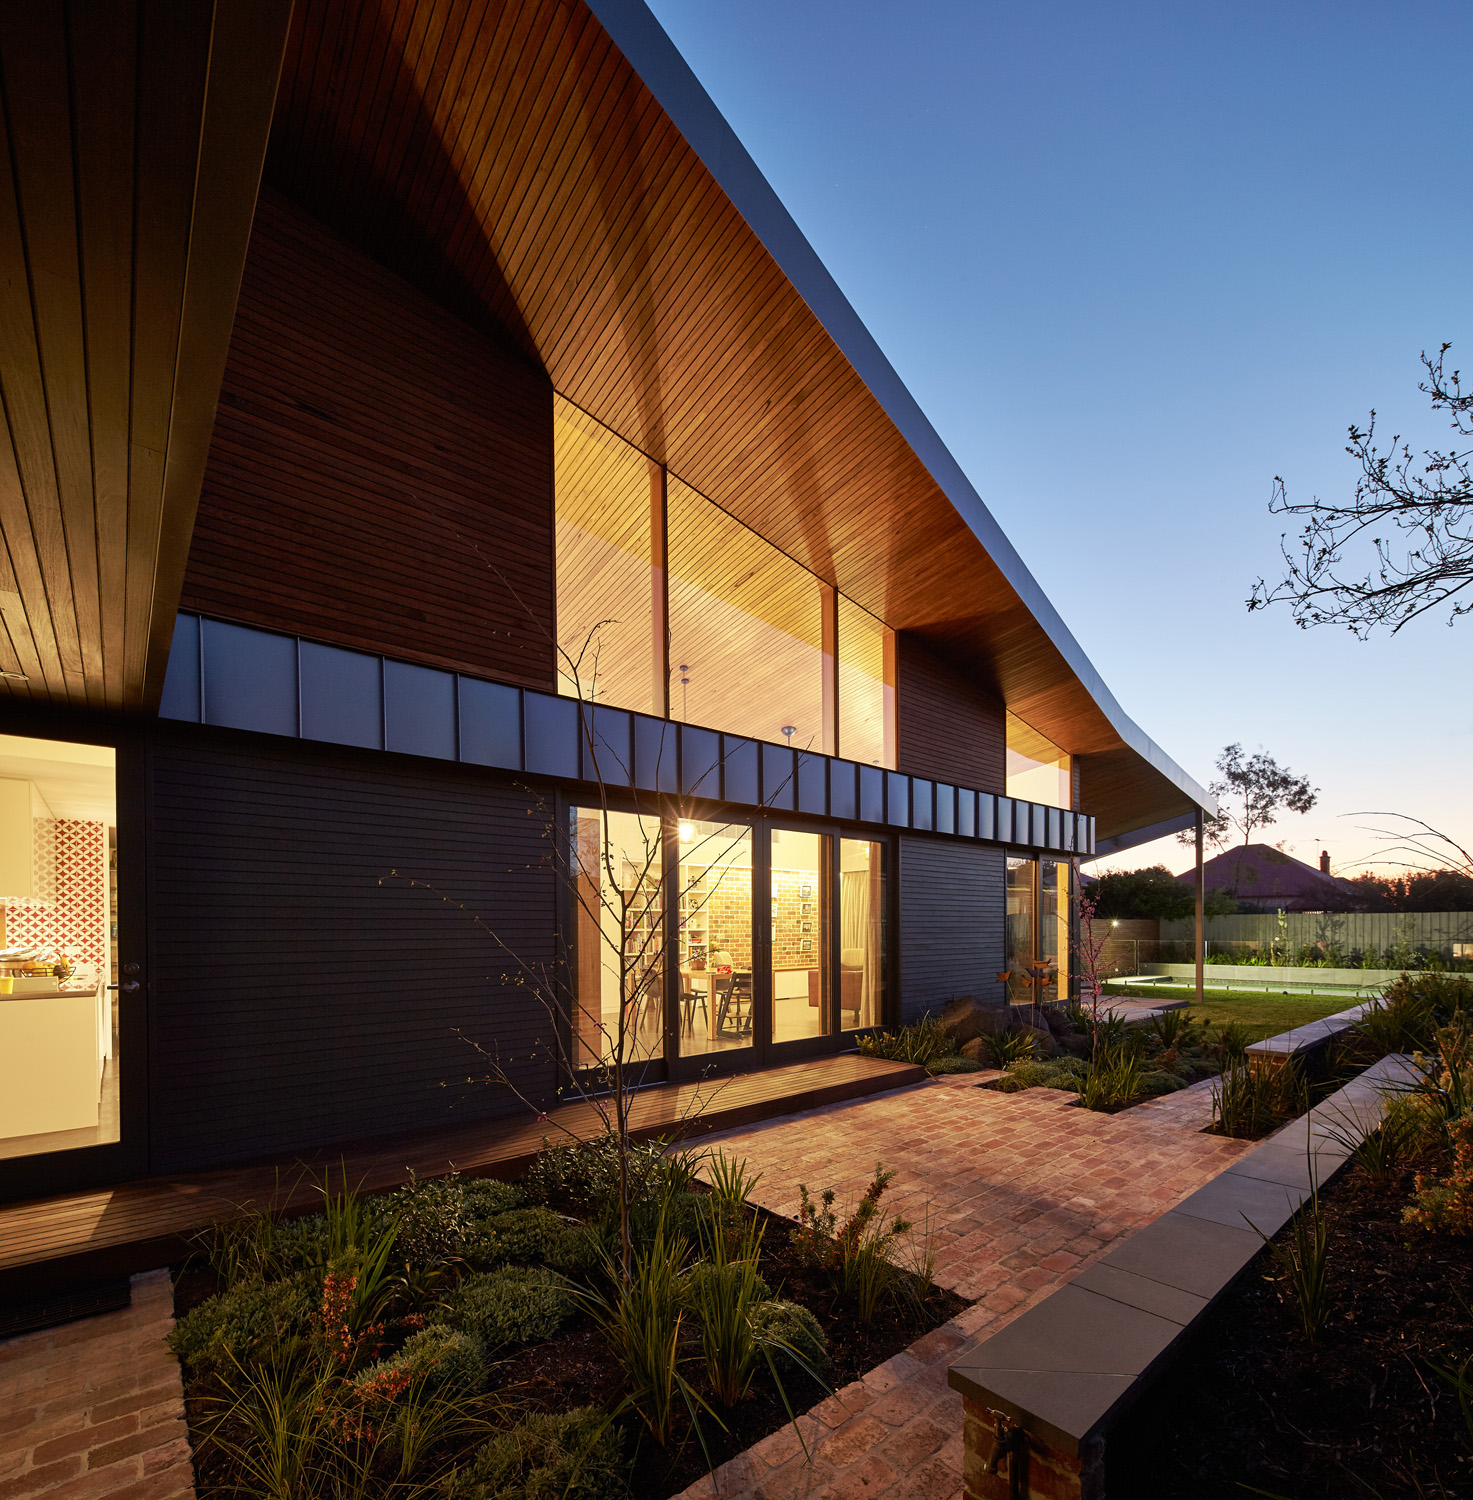 Image from http://www.guildarchitects.com.au/